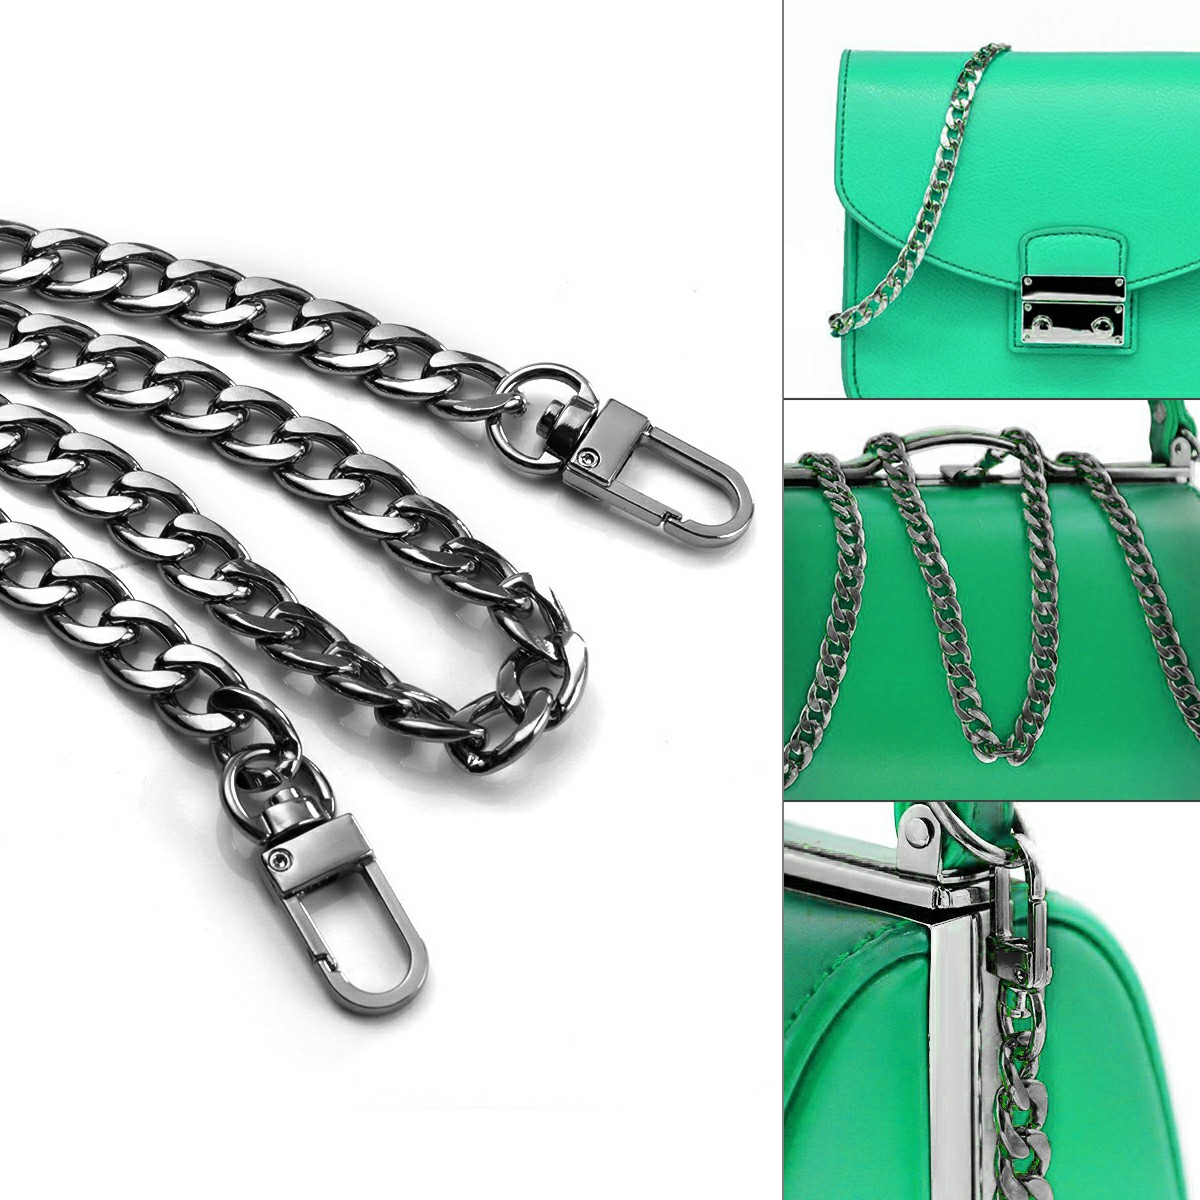 Bag Metal Flat Chain Replacement Strap for Handbag Purse - Black